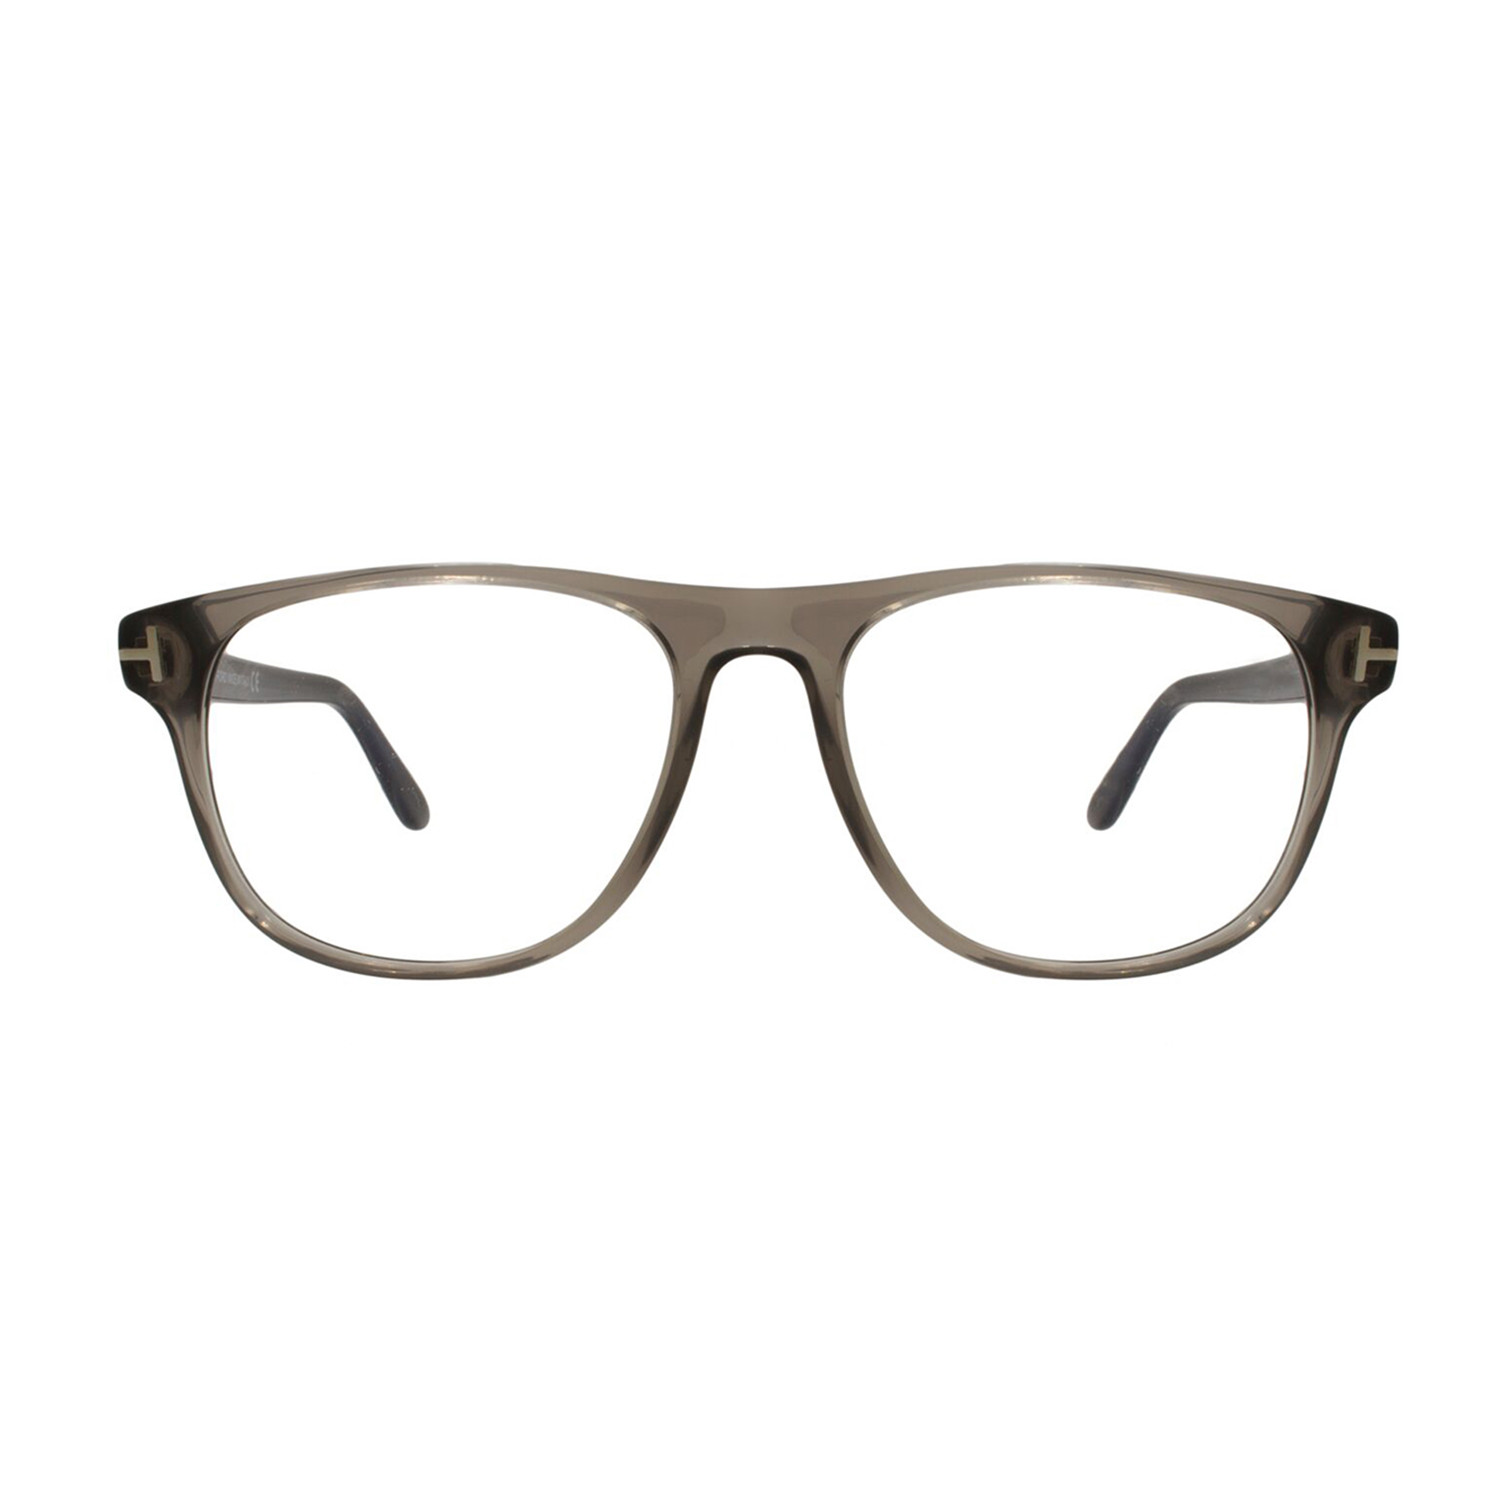 Tom Ford Guido Frame // Grey - See Sharp - Touch of Modern